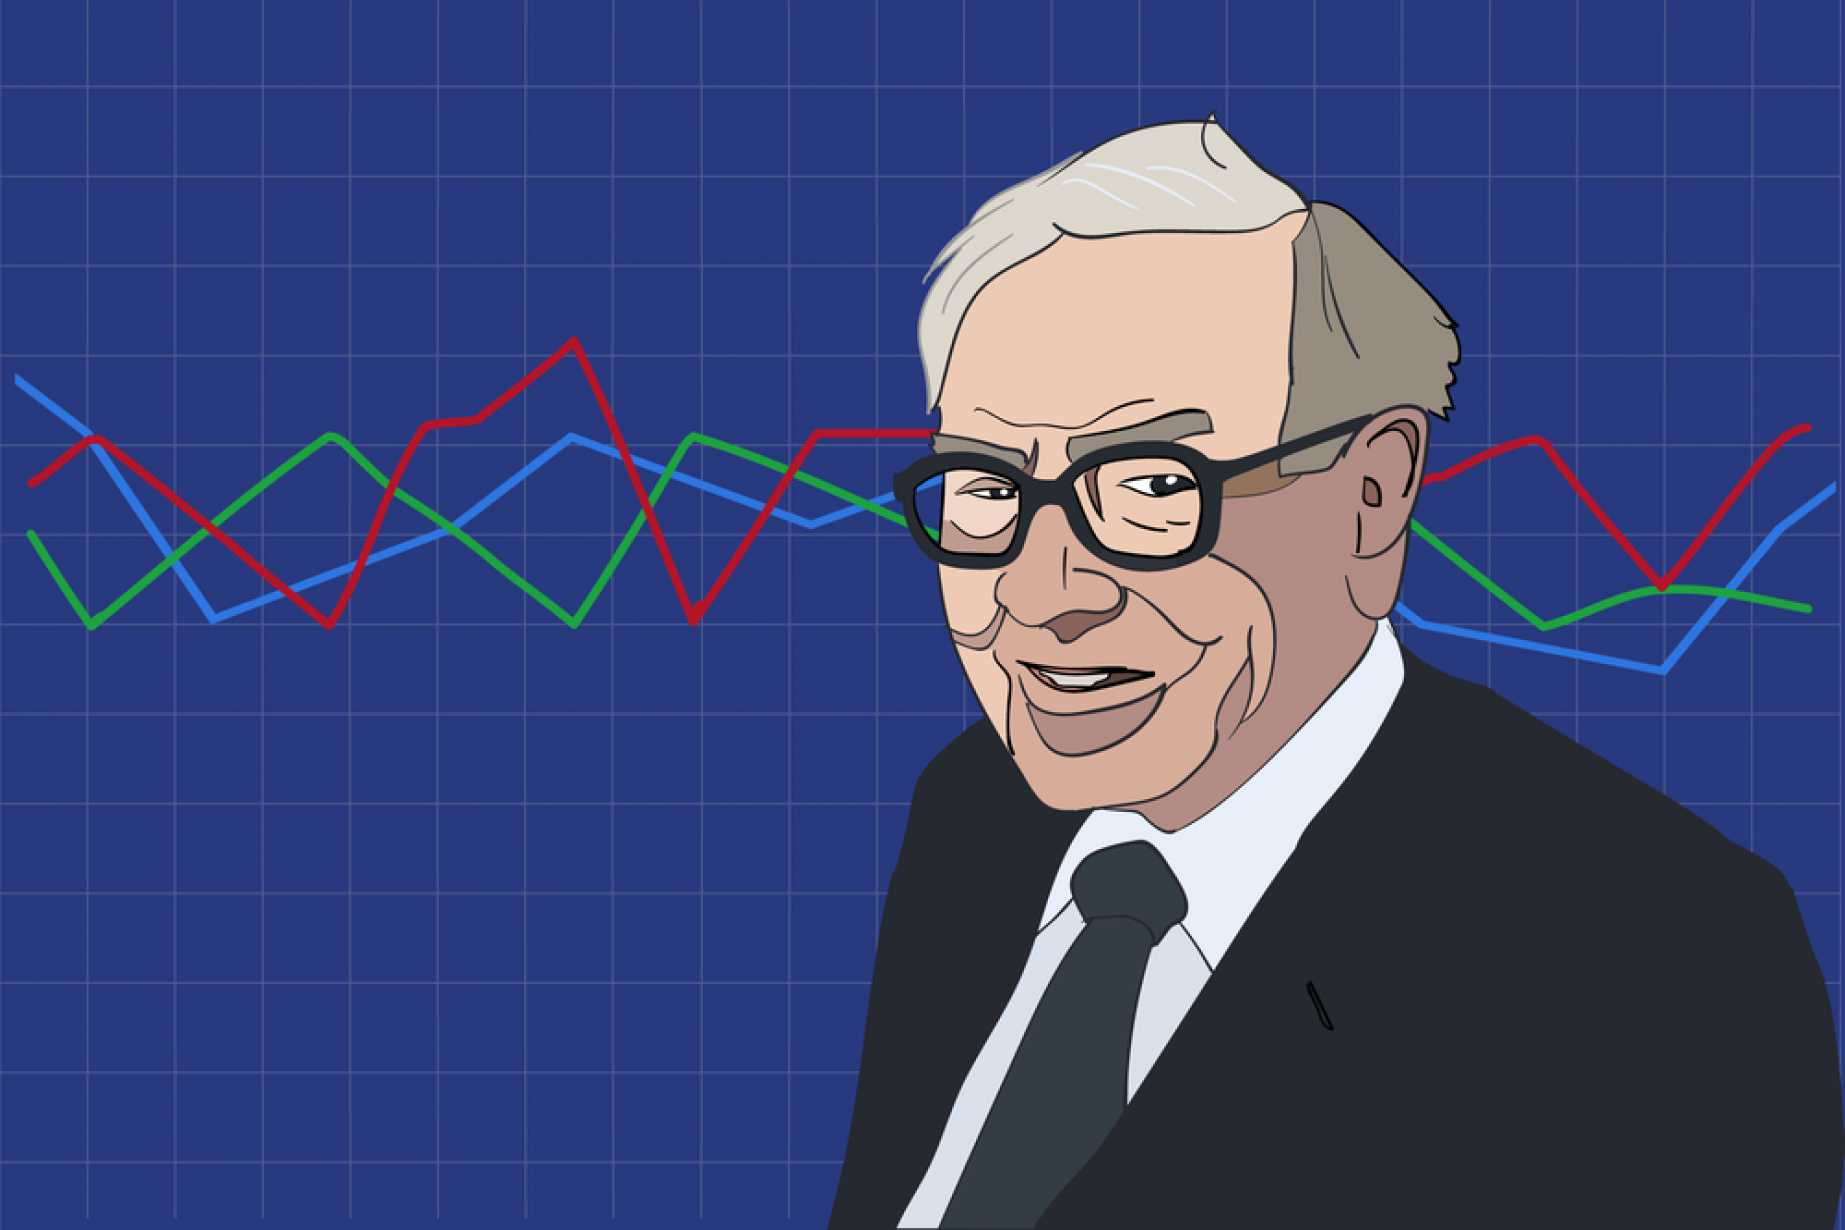 Anche Warren Buffett perde a causa della crisi: le sue strategie di investimento - fxempire.it